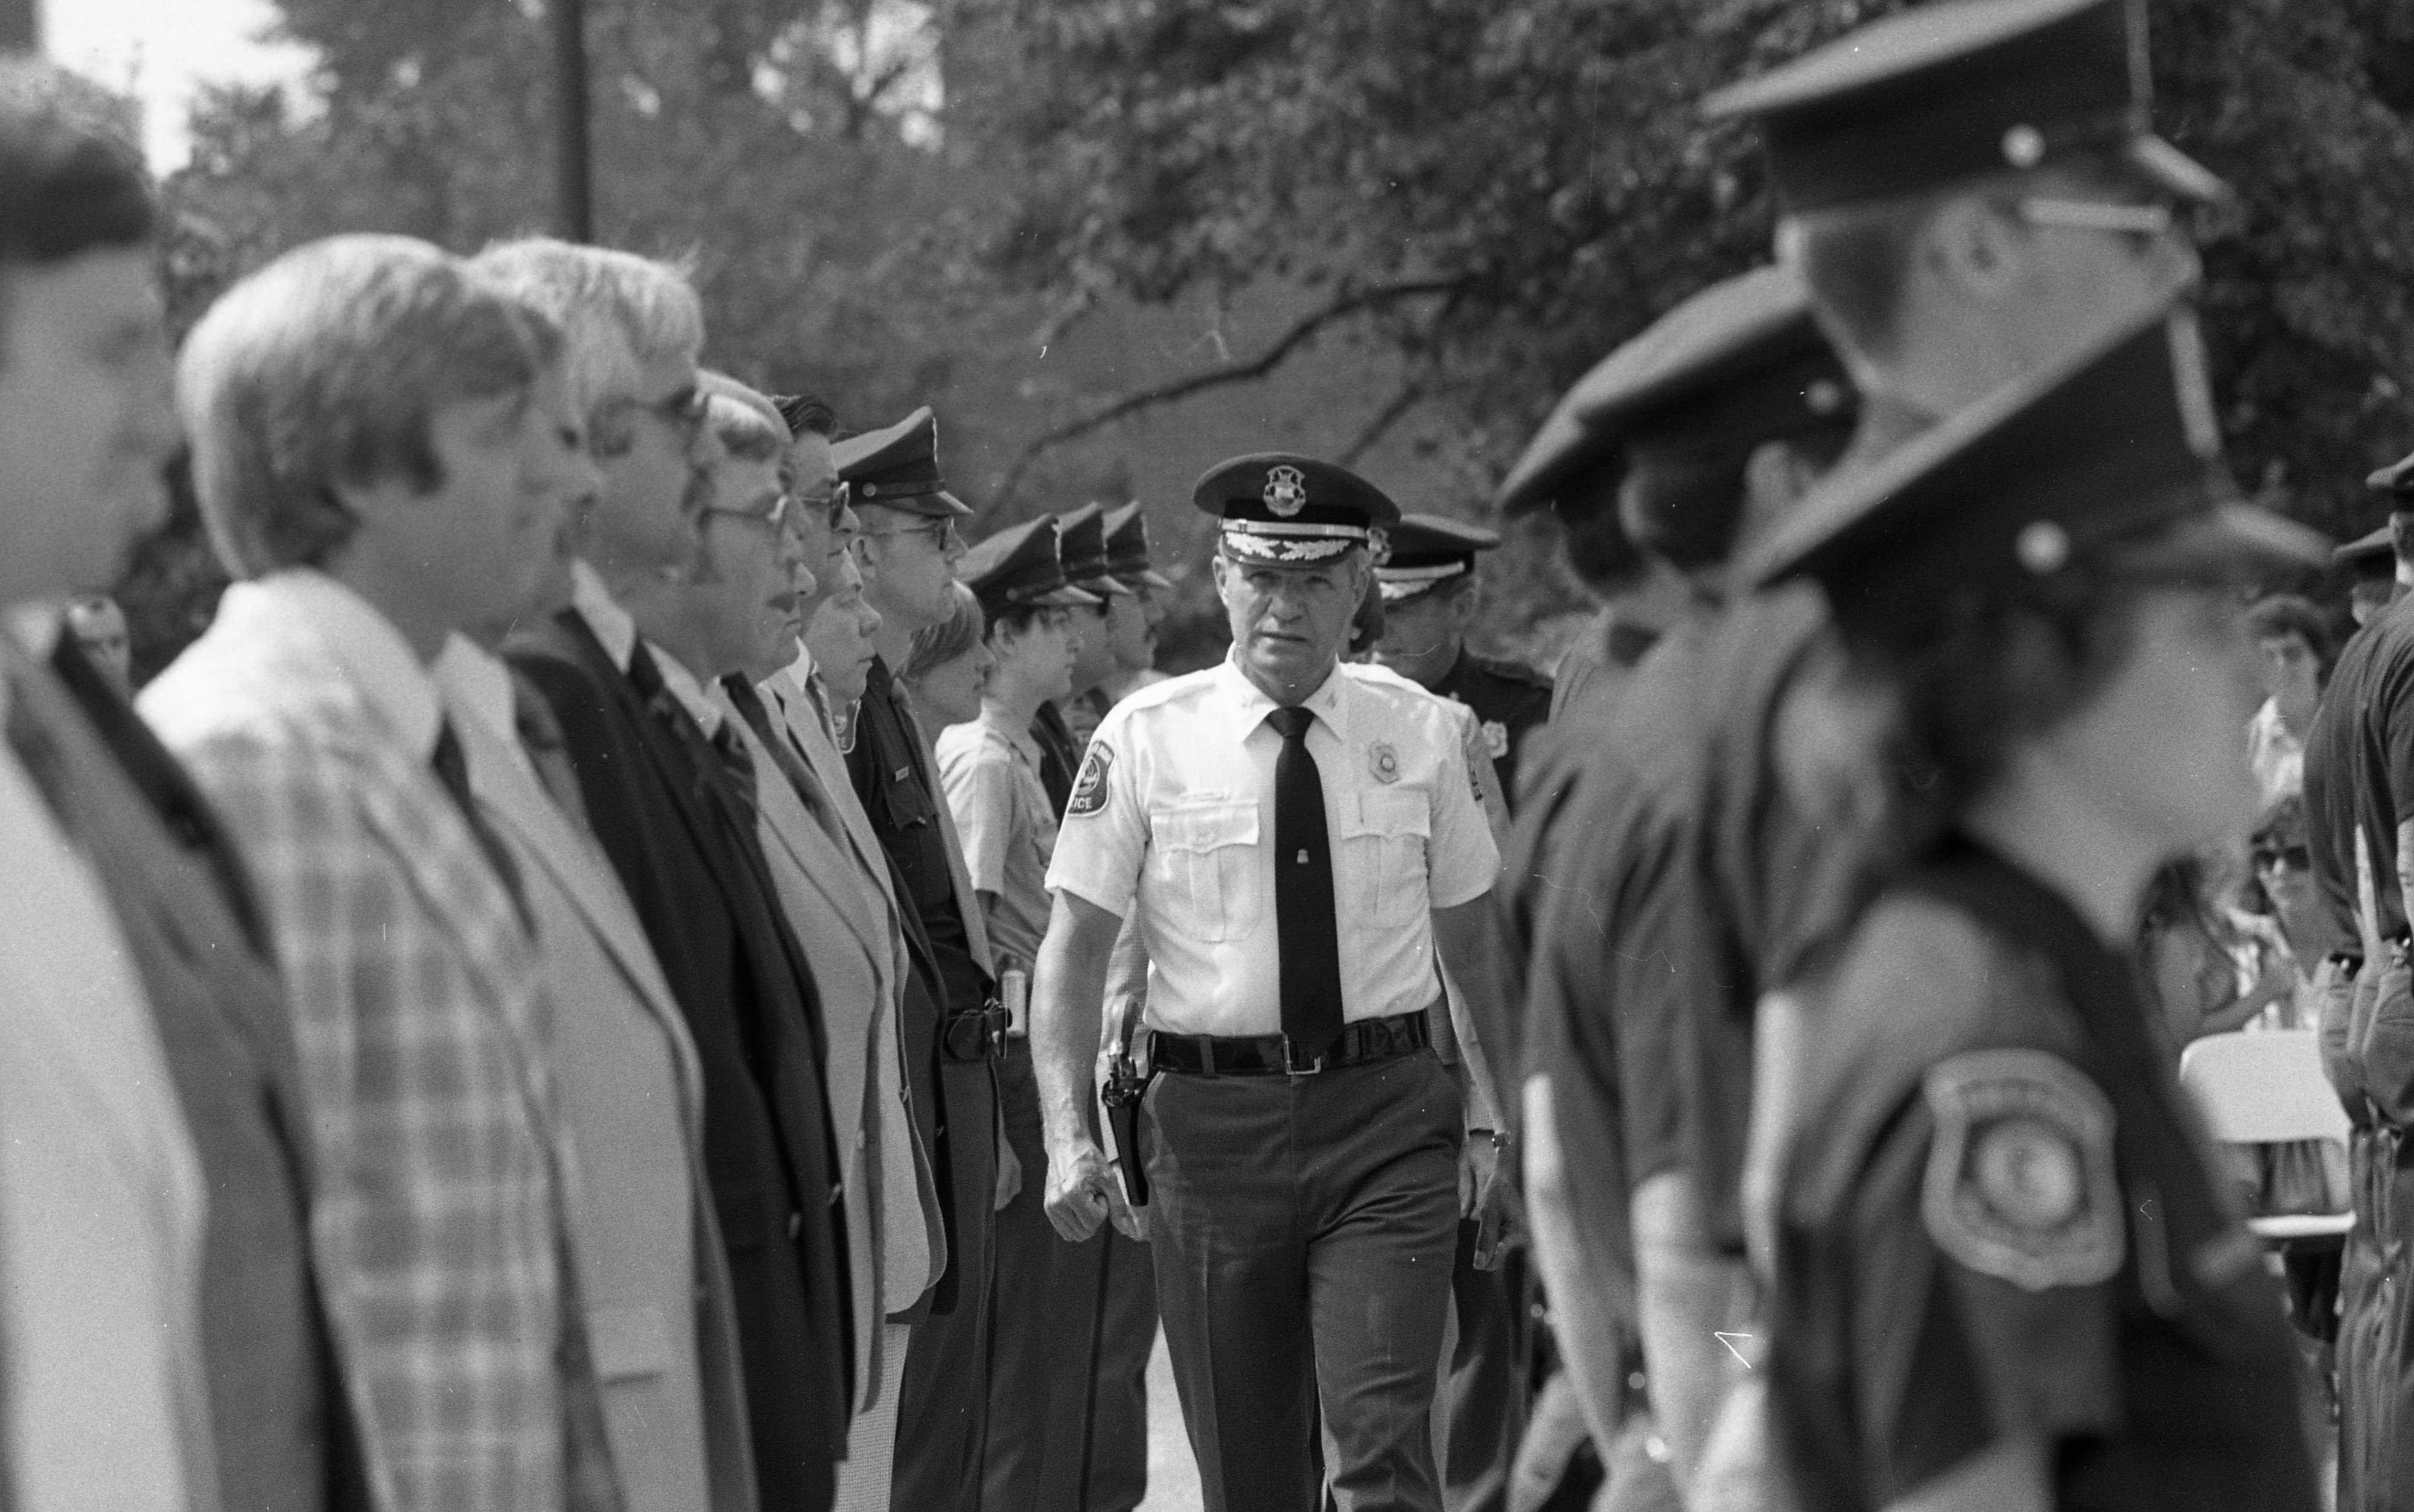 Ann Arbor Police Chief William J. Corbett Reviews Officers at Awards Ceremony, July 1981 image